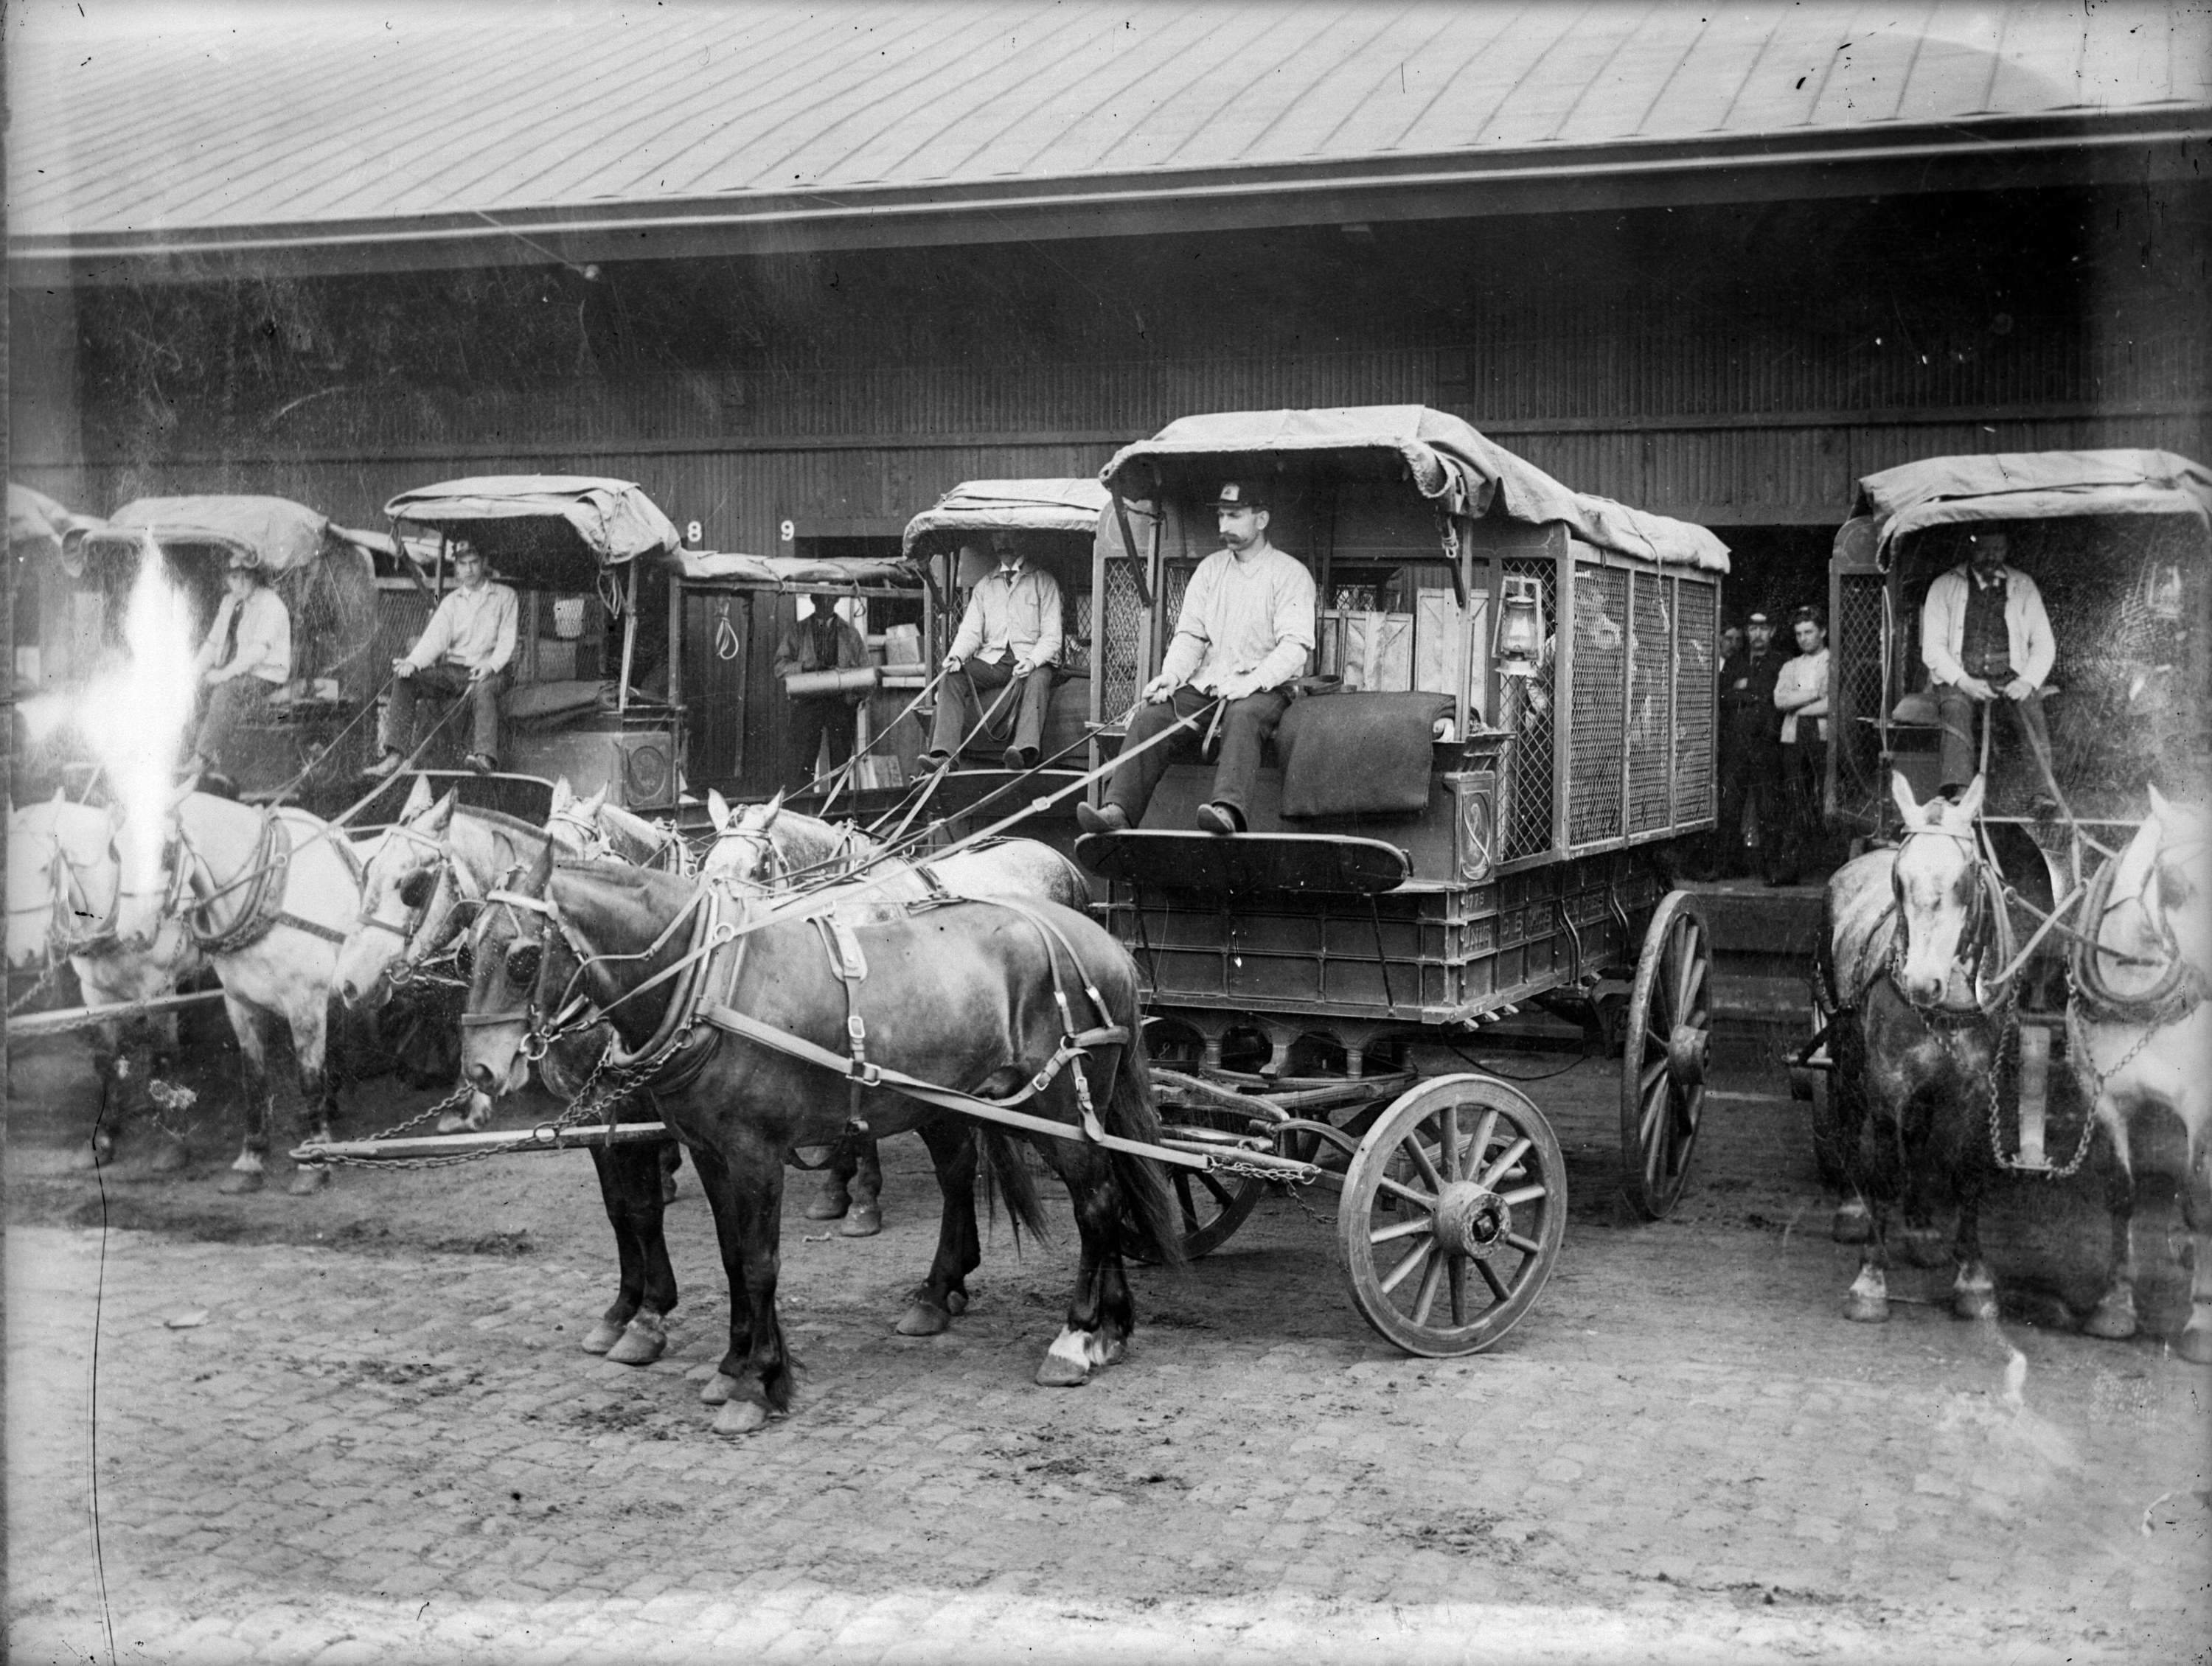 A fleet of horse-drawn carriages with men holding their reins